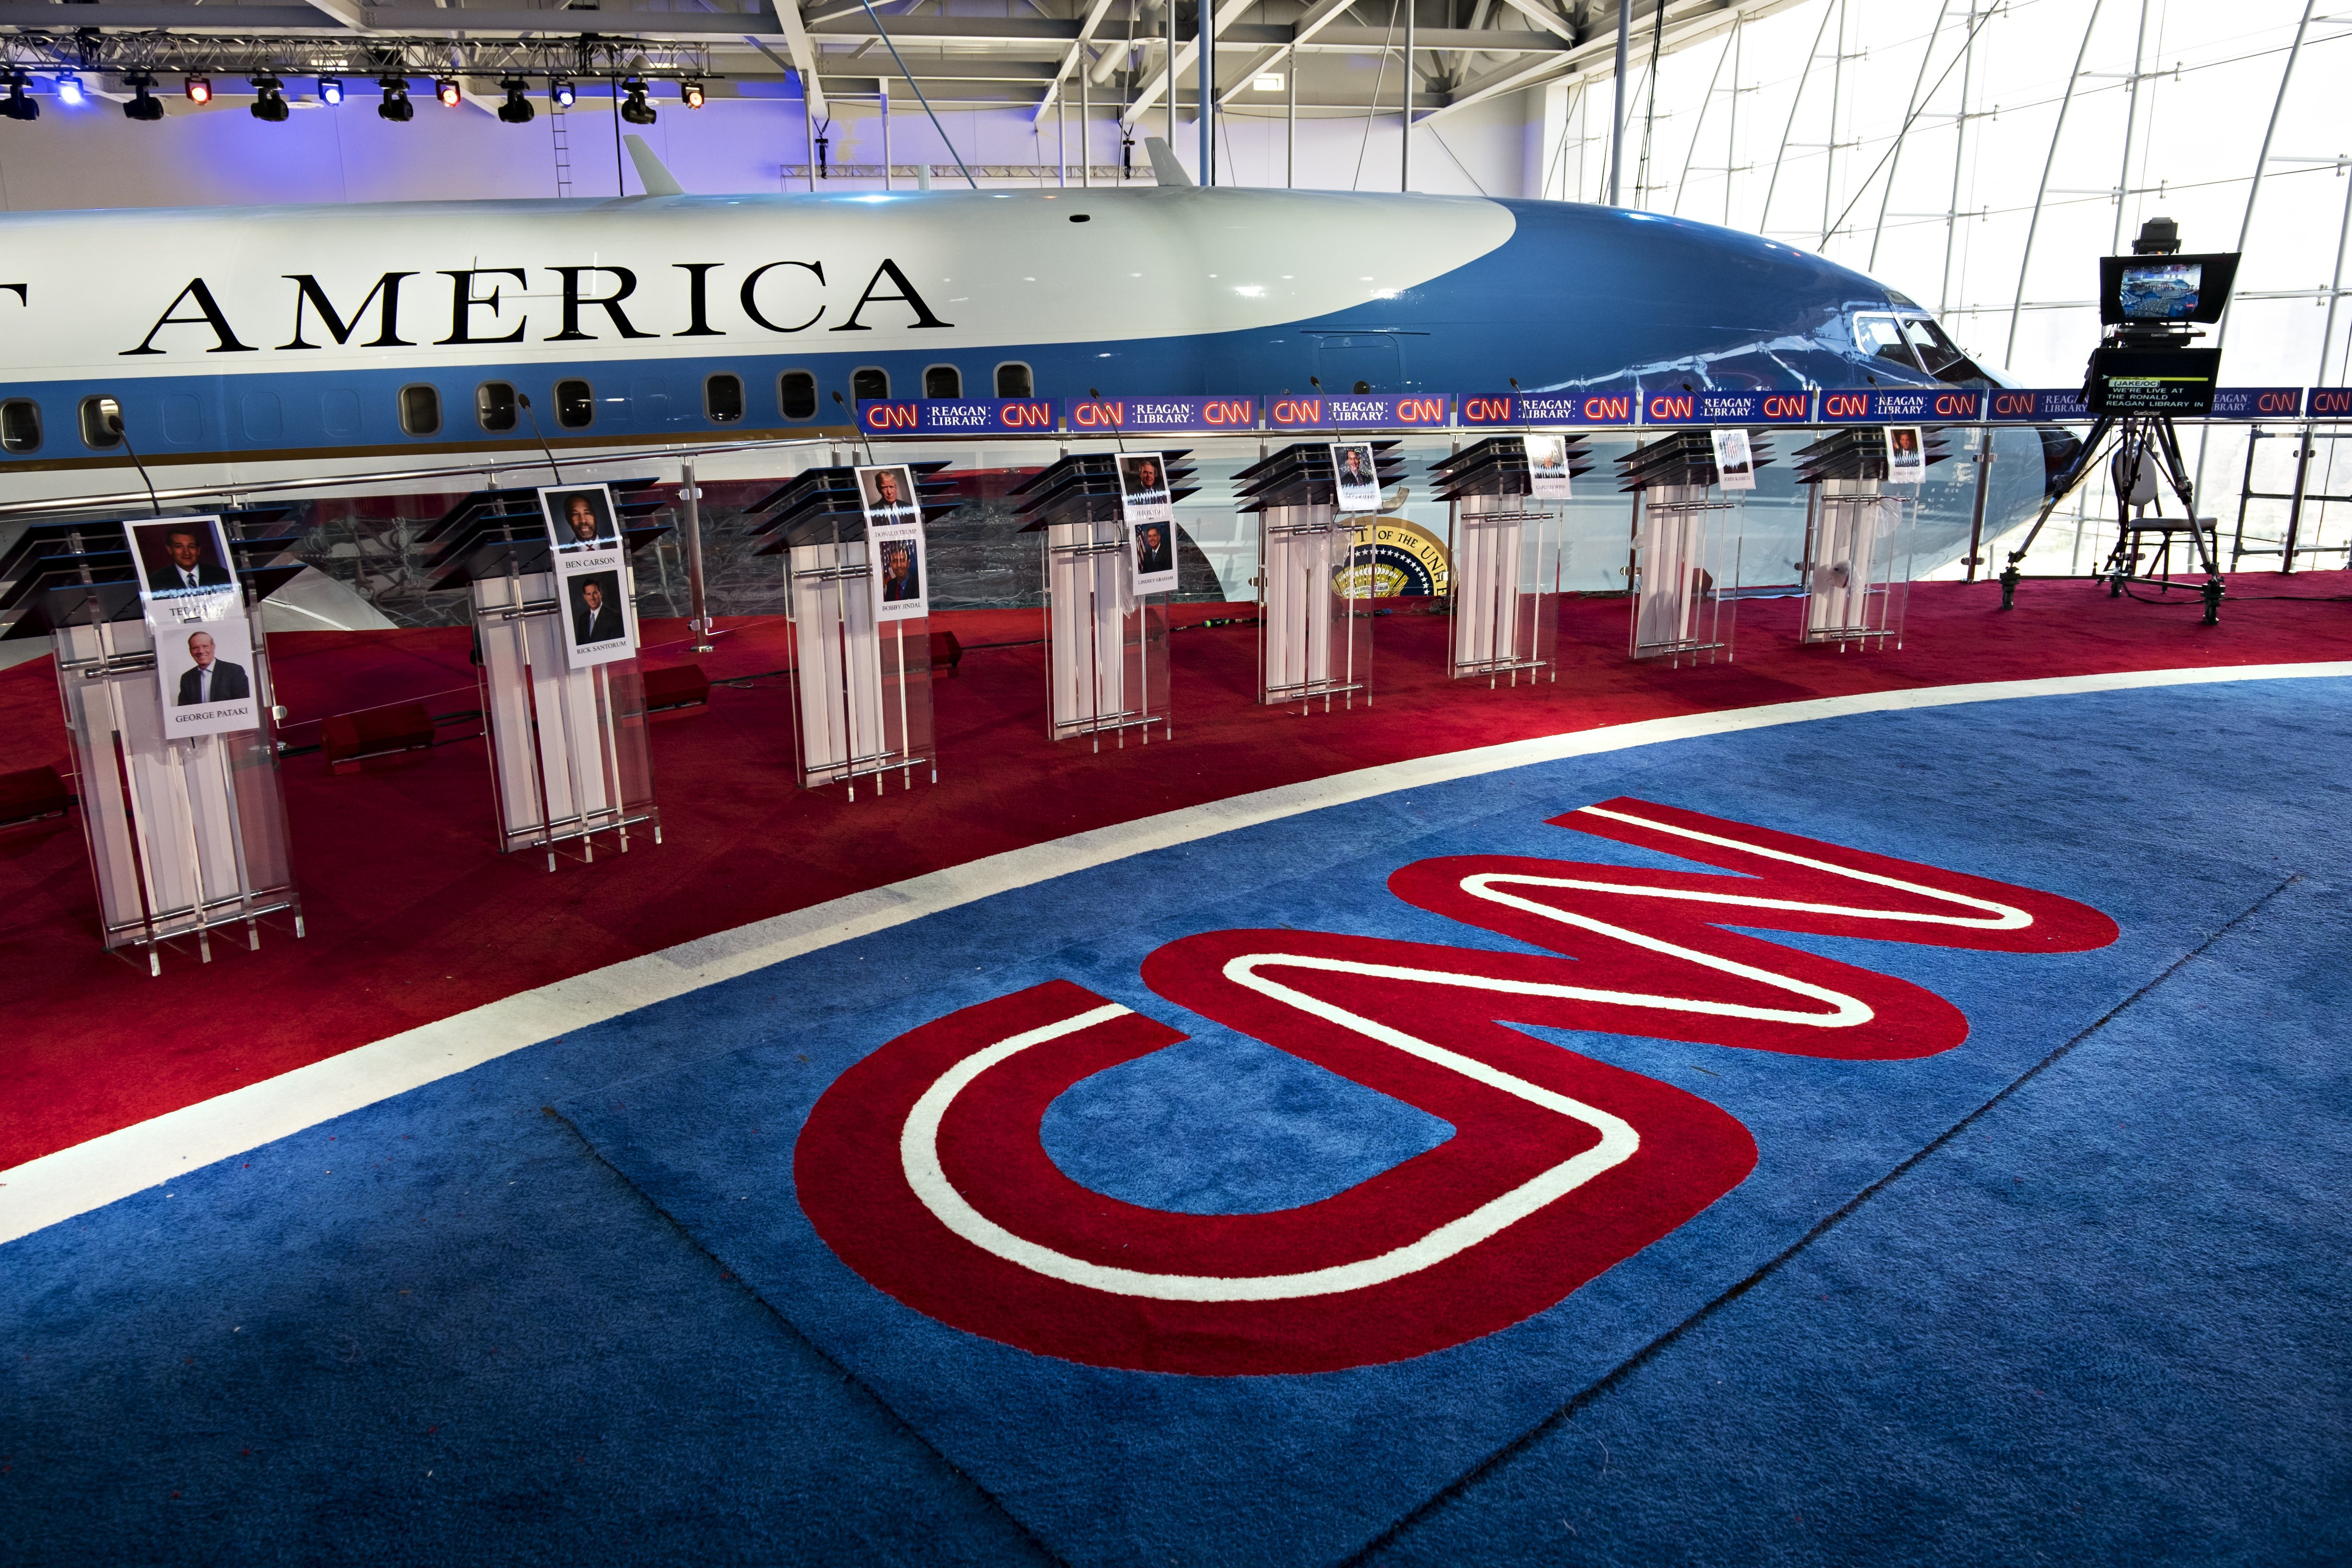 The stage is set at the Reagan Presidential Library on September 13, 2015, for the CNN Republican Presidential Candidate Debate. CNN's Jake Tapper will be the moderator for the debate from the Library on the 16th.